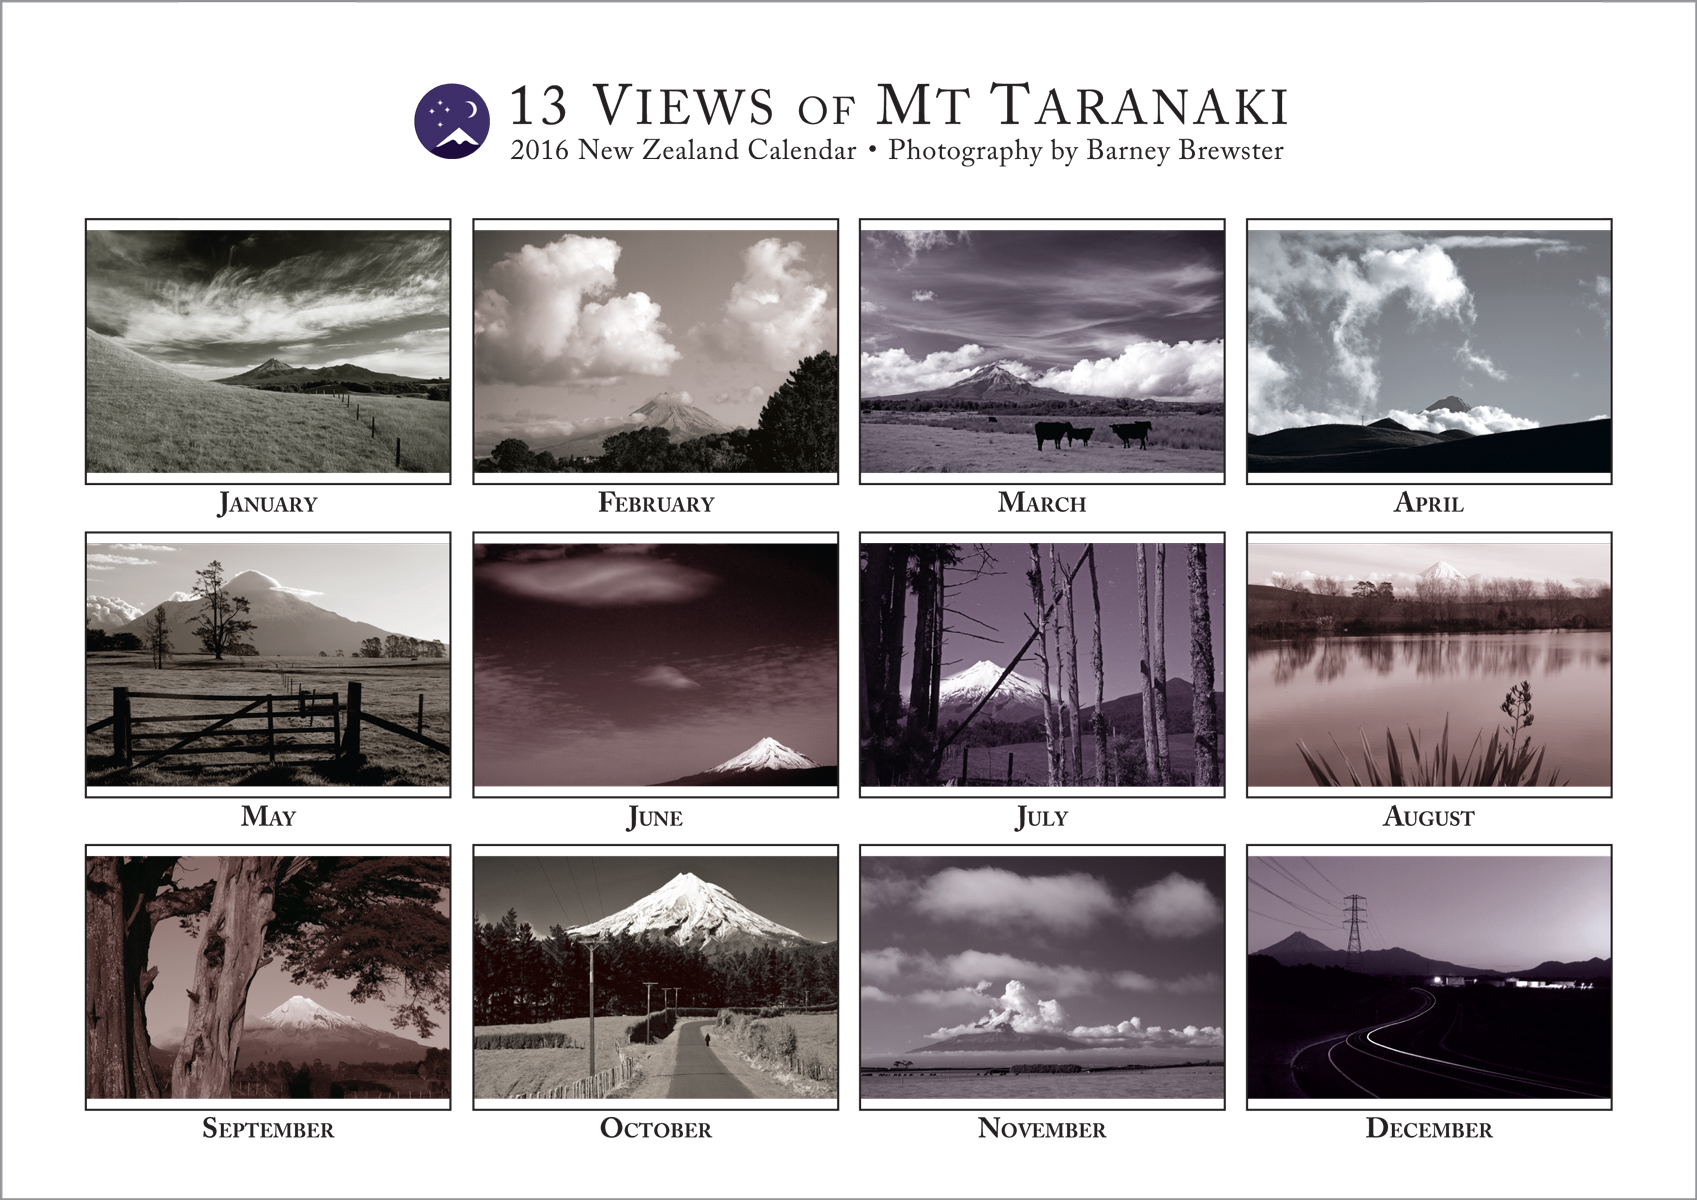 13-Views-of-Mt-Taranaki-Calendar-back